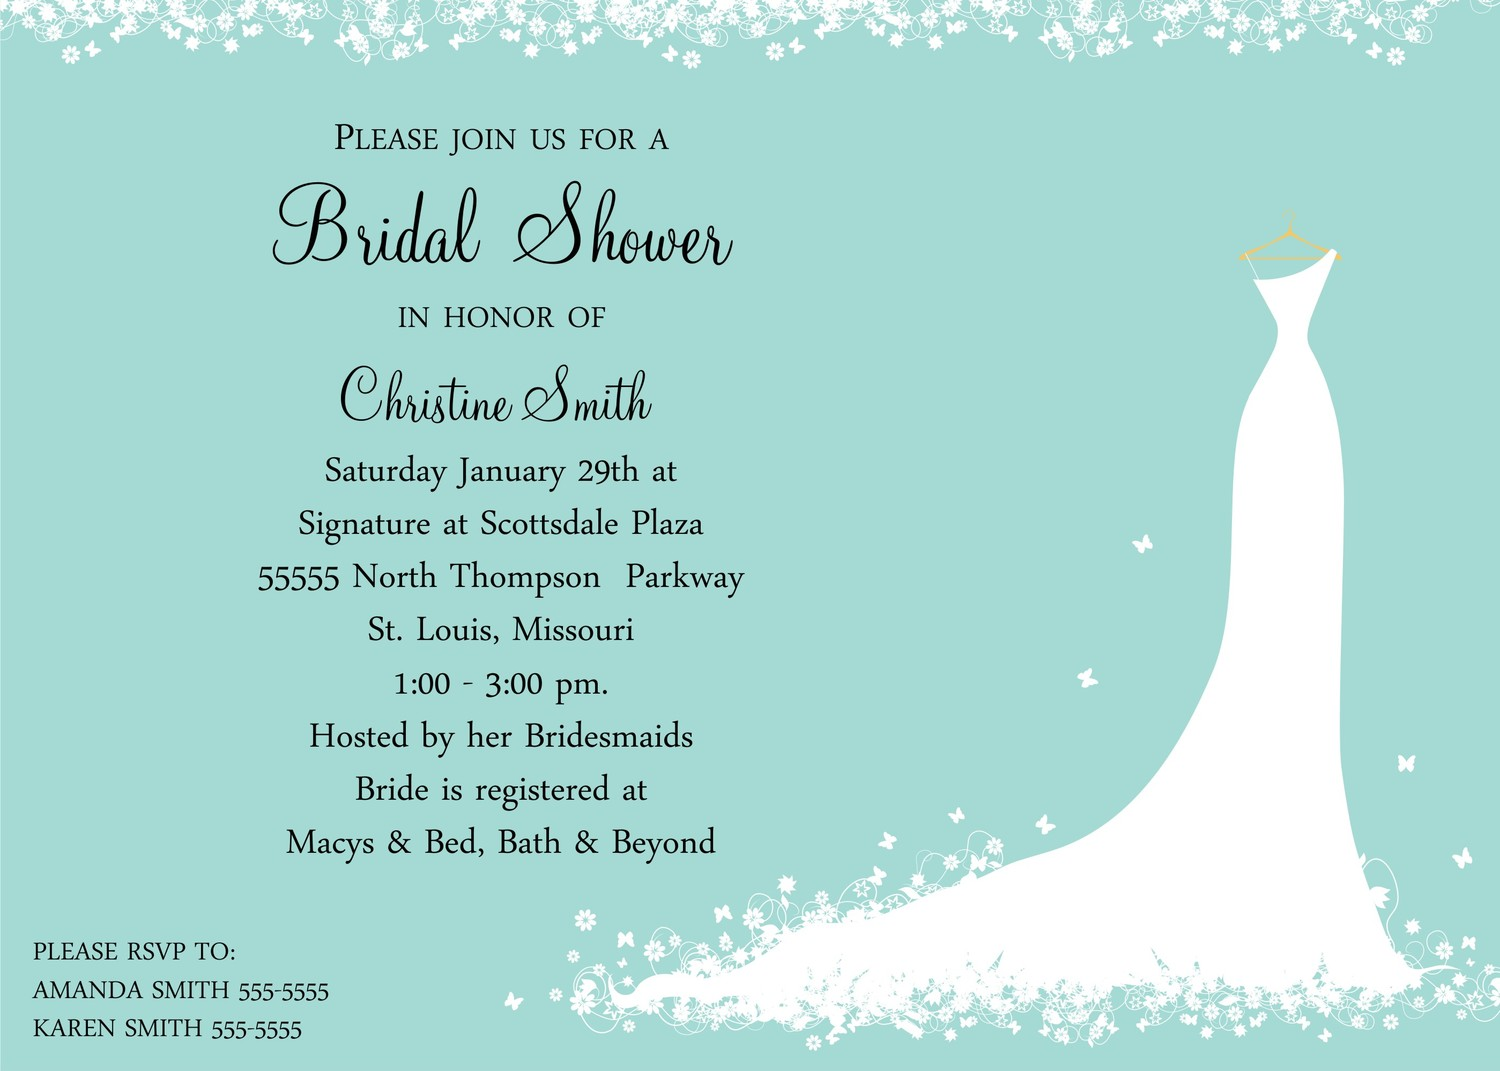 Sample Bridal Shower Invitations is an amazing ideas you had to choose for invitation design